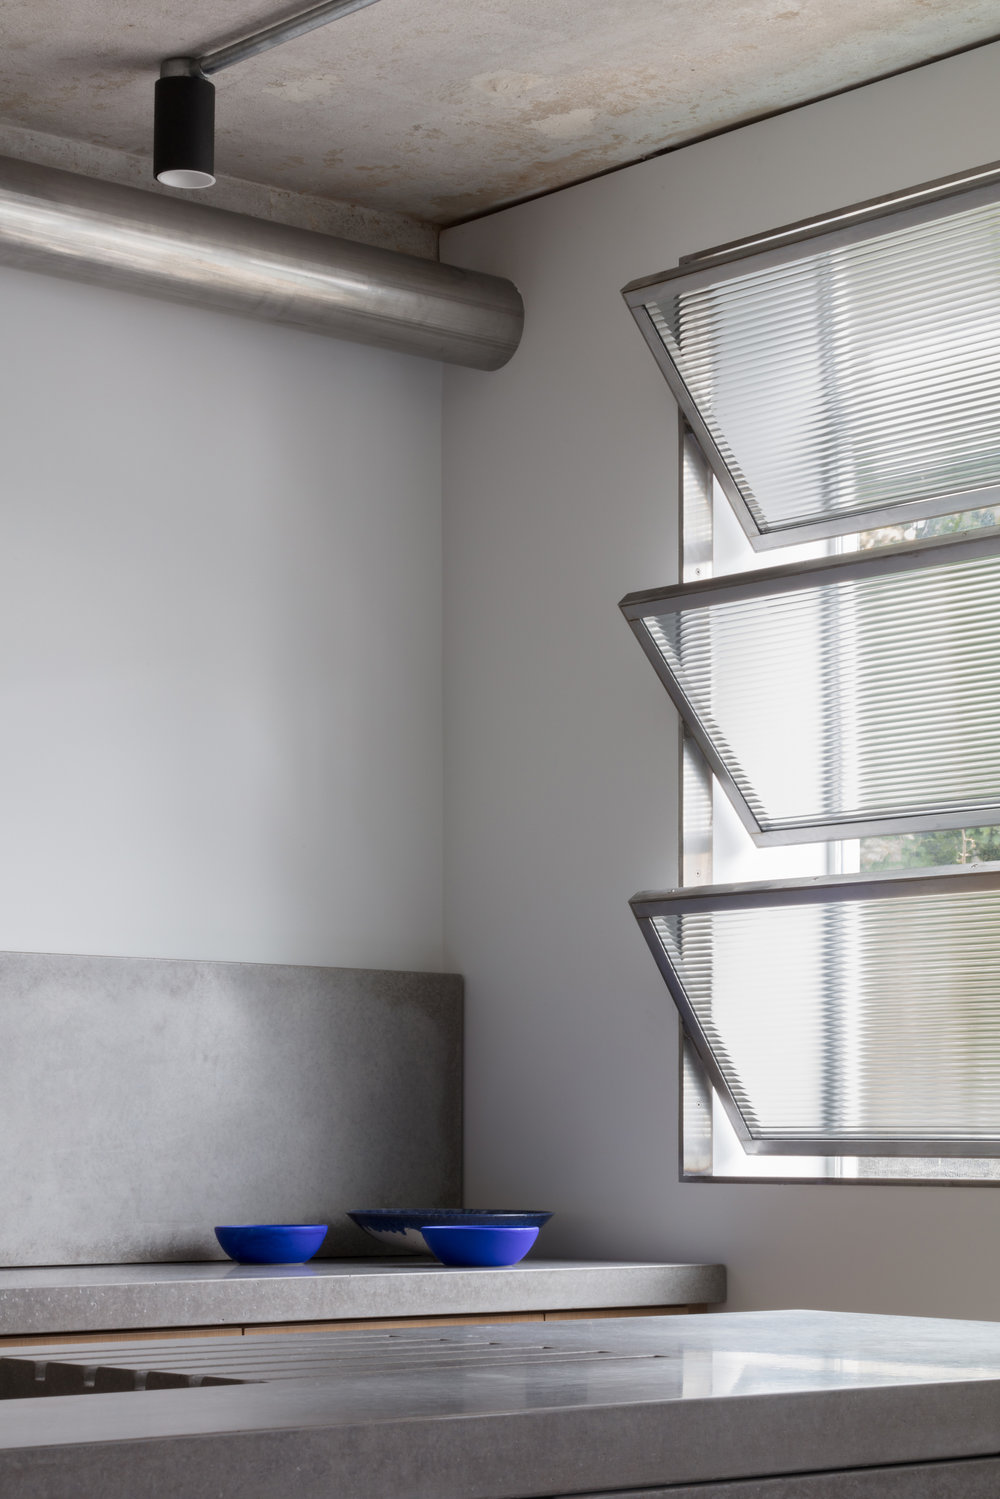 Union-Wharf-Islington-London-Concrete-Shutters-Kitchen-Interior-Residential-Architect.jpg